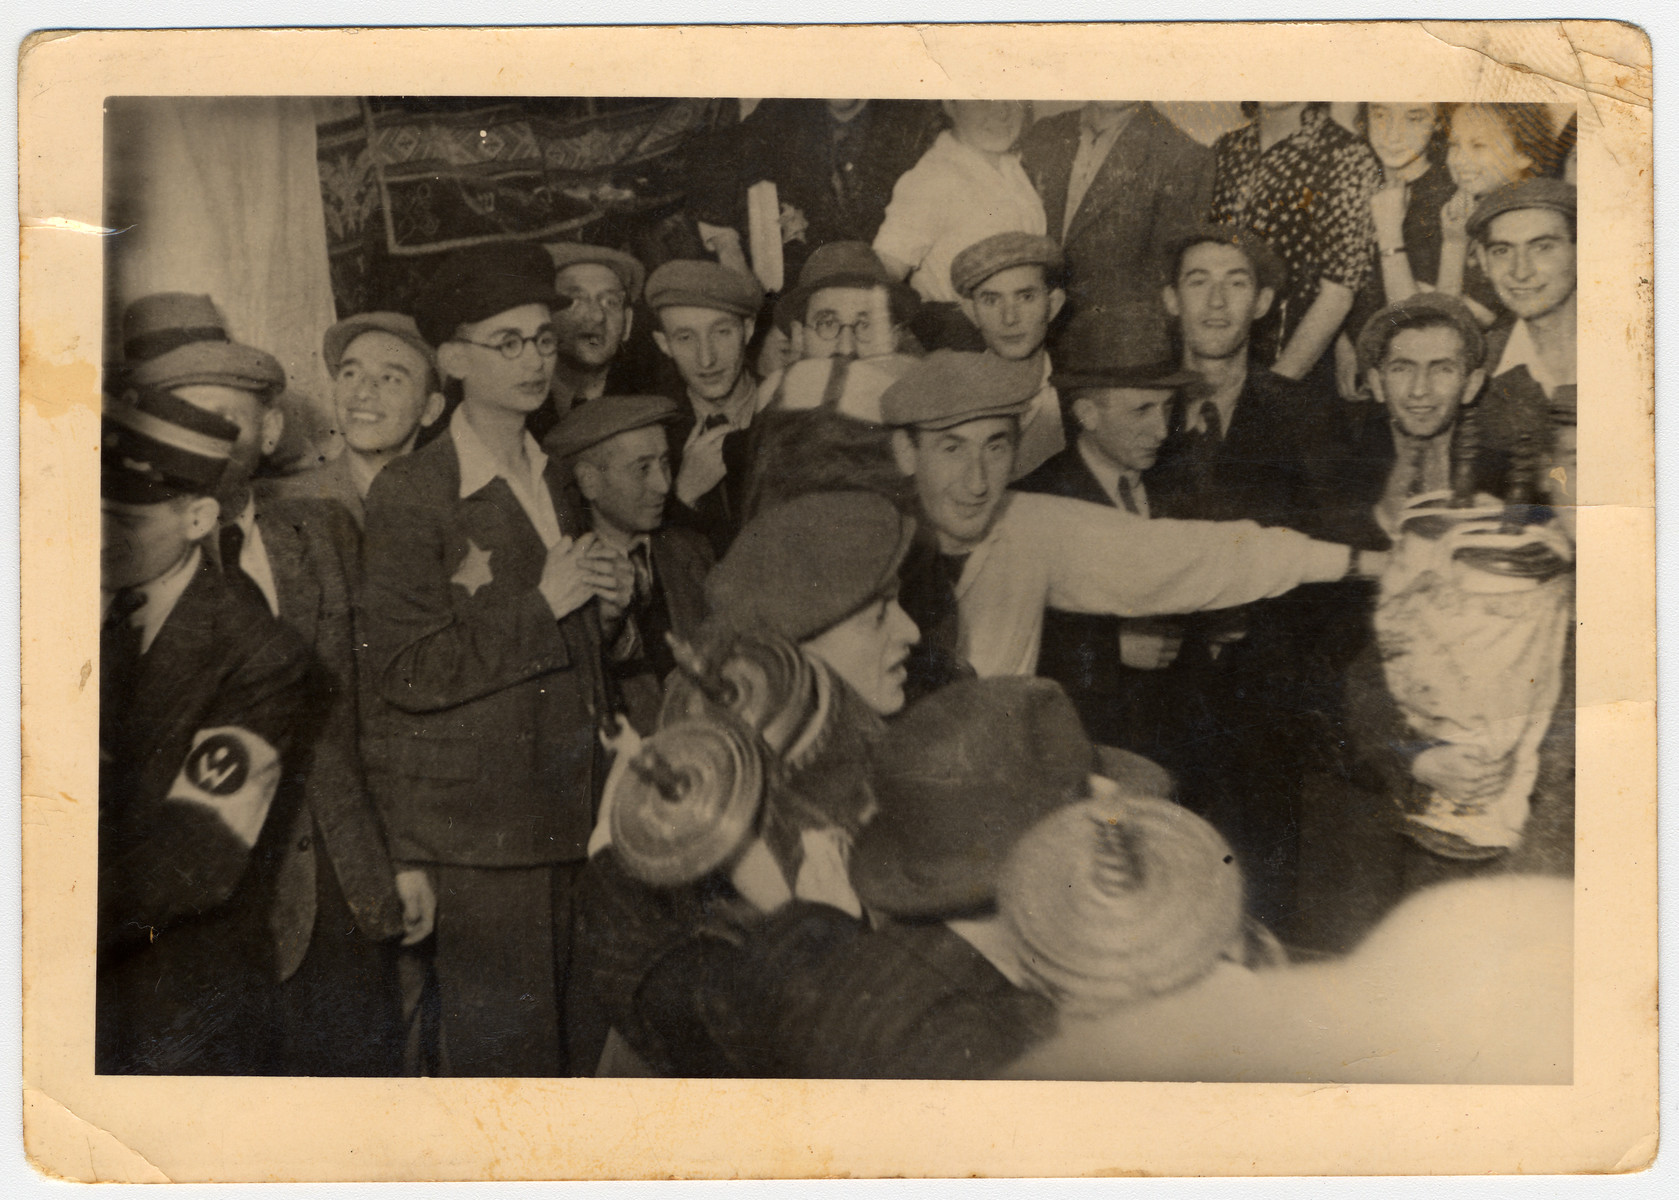 Members of Hanoar Hatzioni, a Zionist youth movement, dance with Torah scrolls in celebration of the Jewish holiday, Simchat Torah,  in the Lodz ghetto.  Standing far left with glasses is Josef Urizon and next to him, facing the camera, is Aron Jakubson.  Behind him, partially hidden is Melech Sziper.  First from right is Matatiahu Cohen, third from right is Wiktor Sztajn and next to him, from profile, is Chaim Nata Widawski.